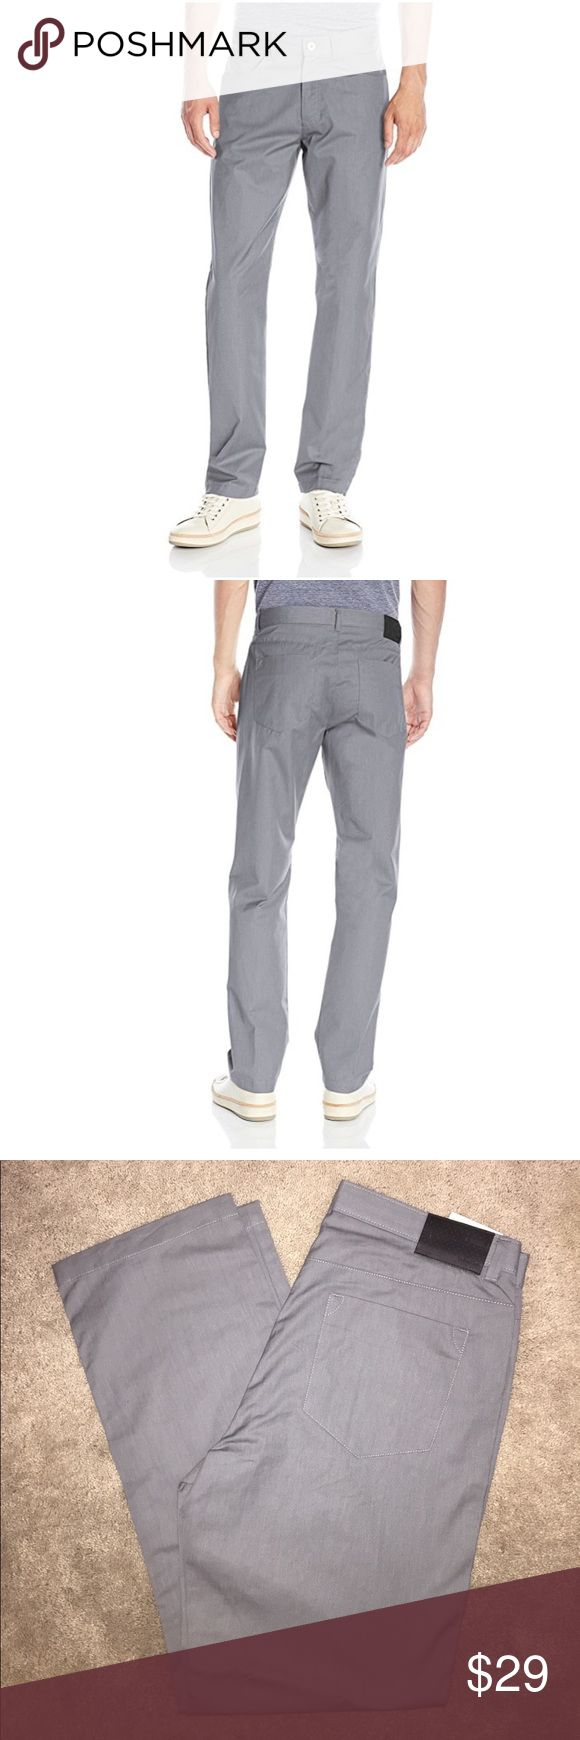 Calvin Klein Men's Twill Pants NWOT. Castle rock Grey. These modern four pocket twill pants feature a casual fit with a belt loop waistband and a button and zip fly enclosure. 100% Cotton (34Wx32L) Calvin Klein Pants